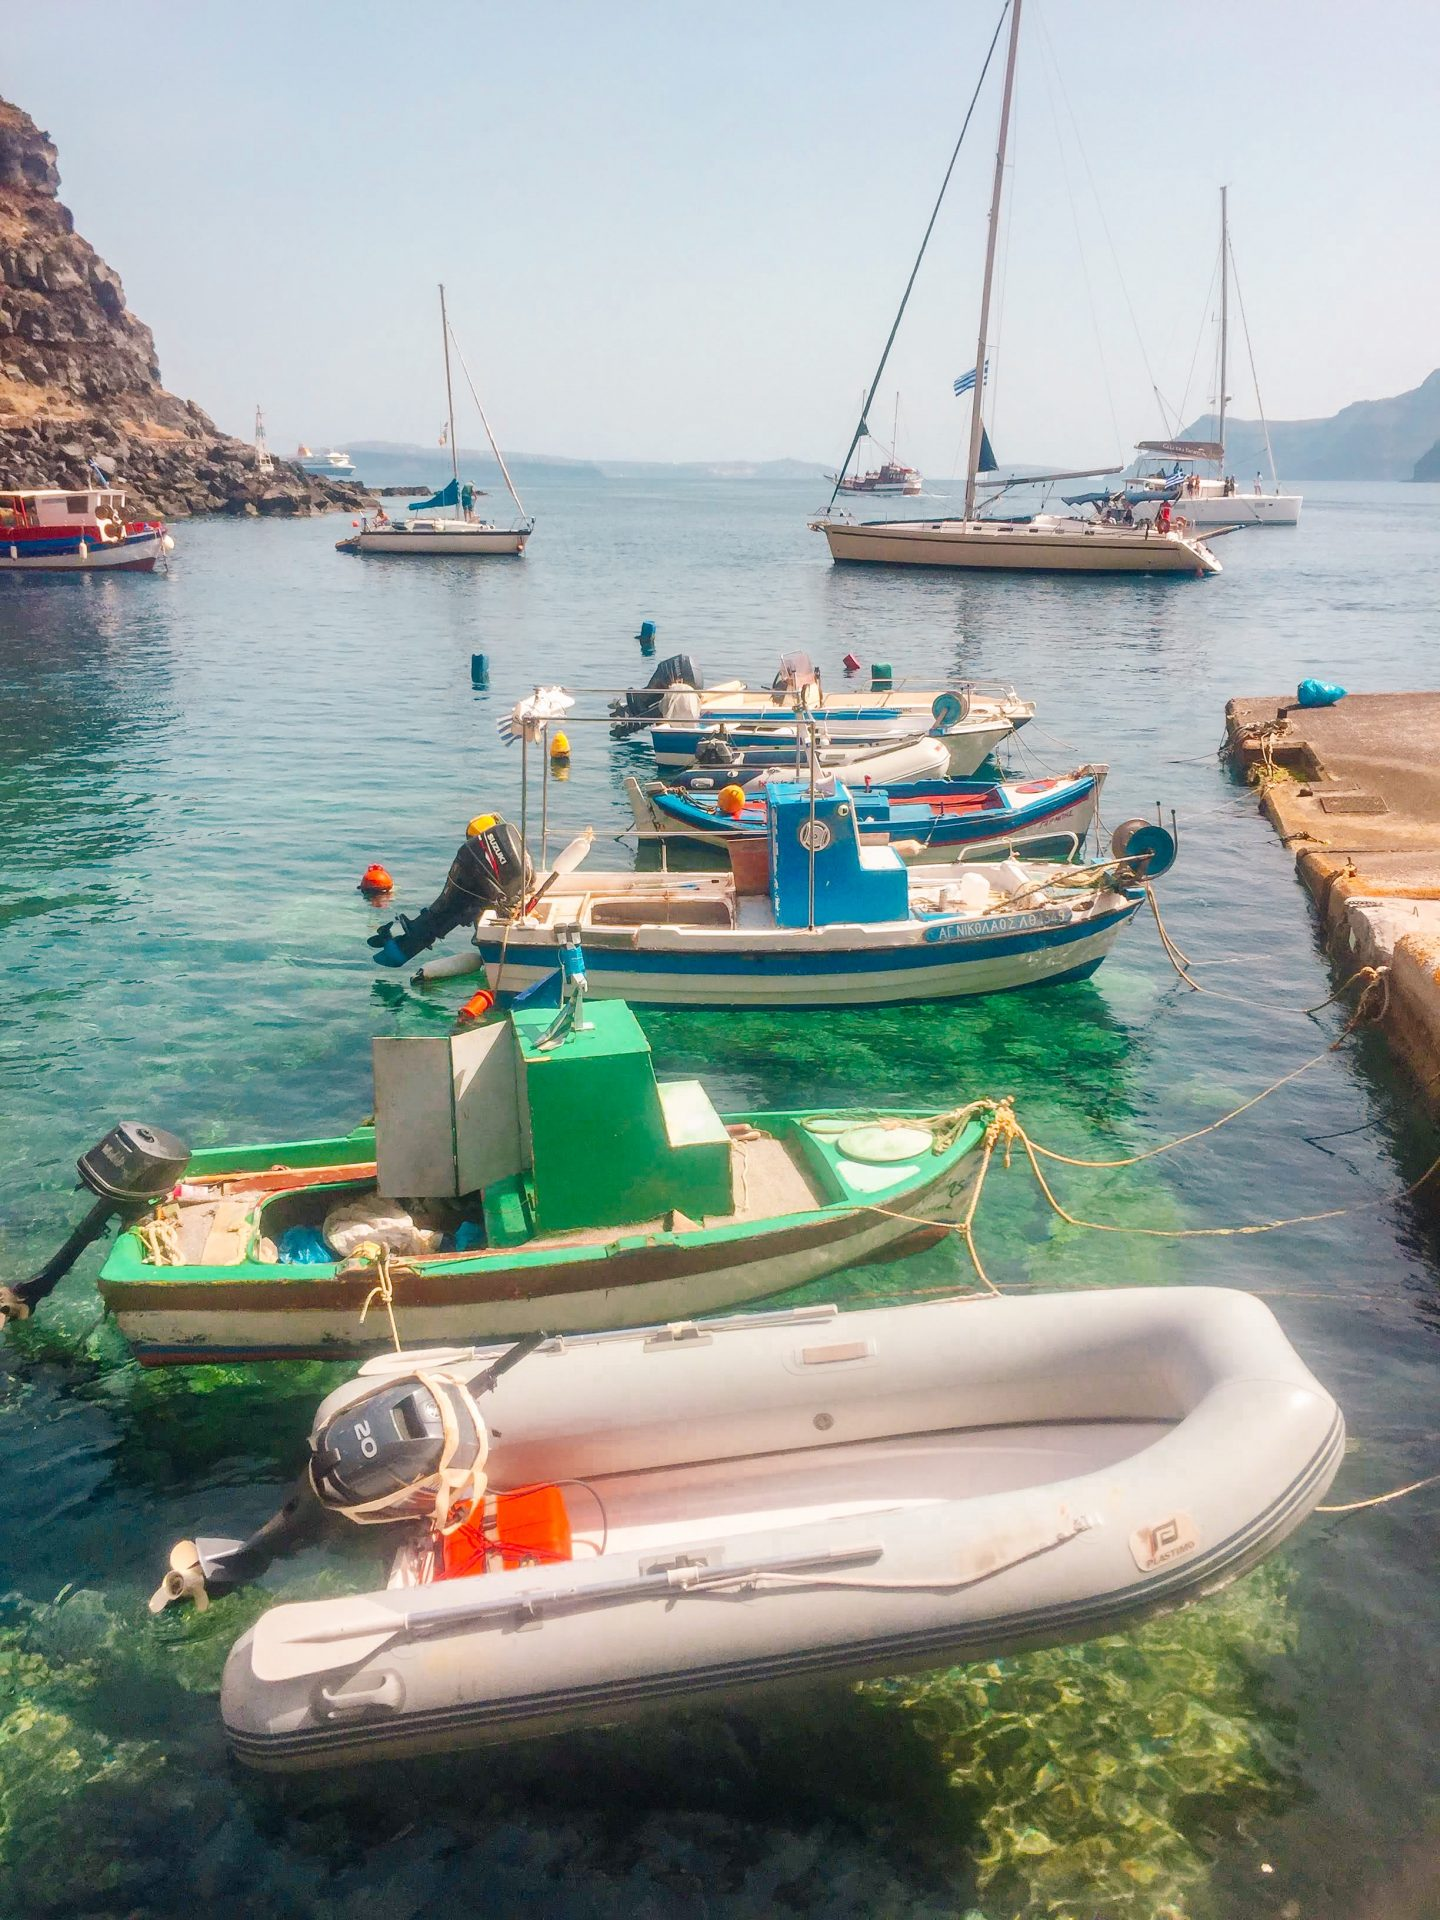 Thirassia Greece boats in the bay